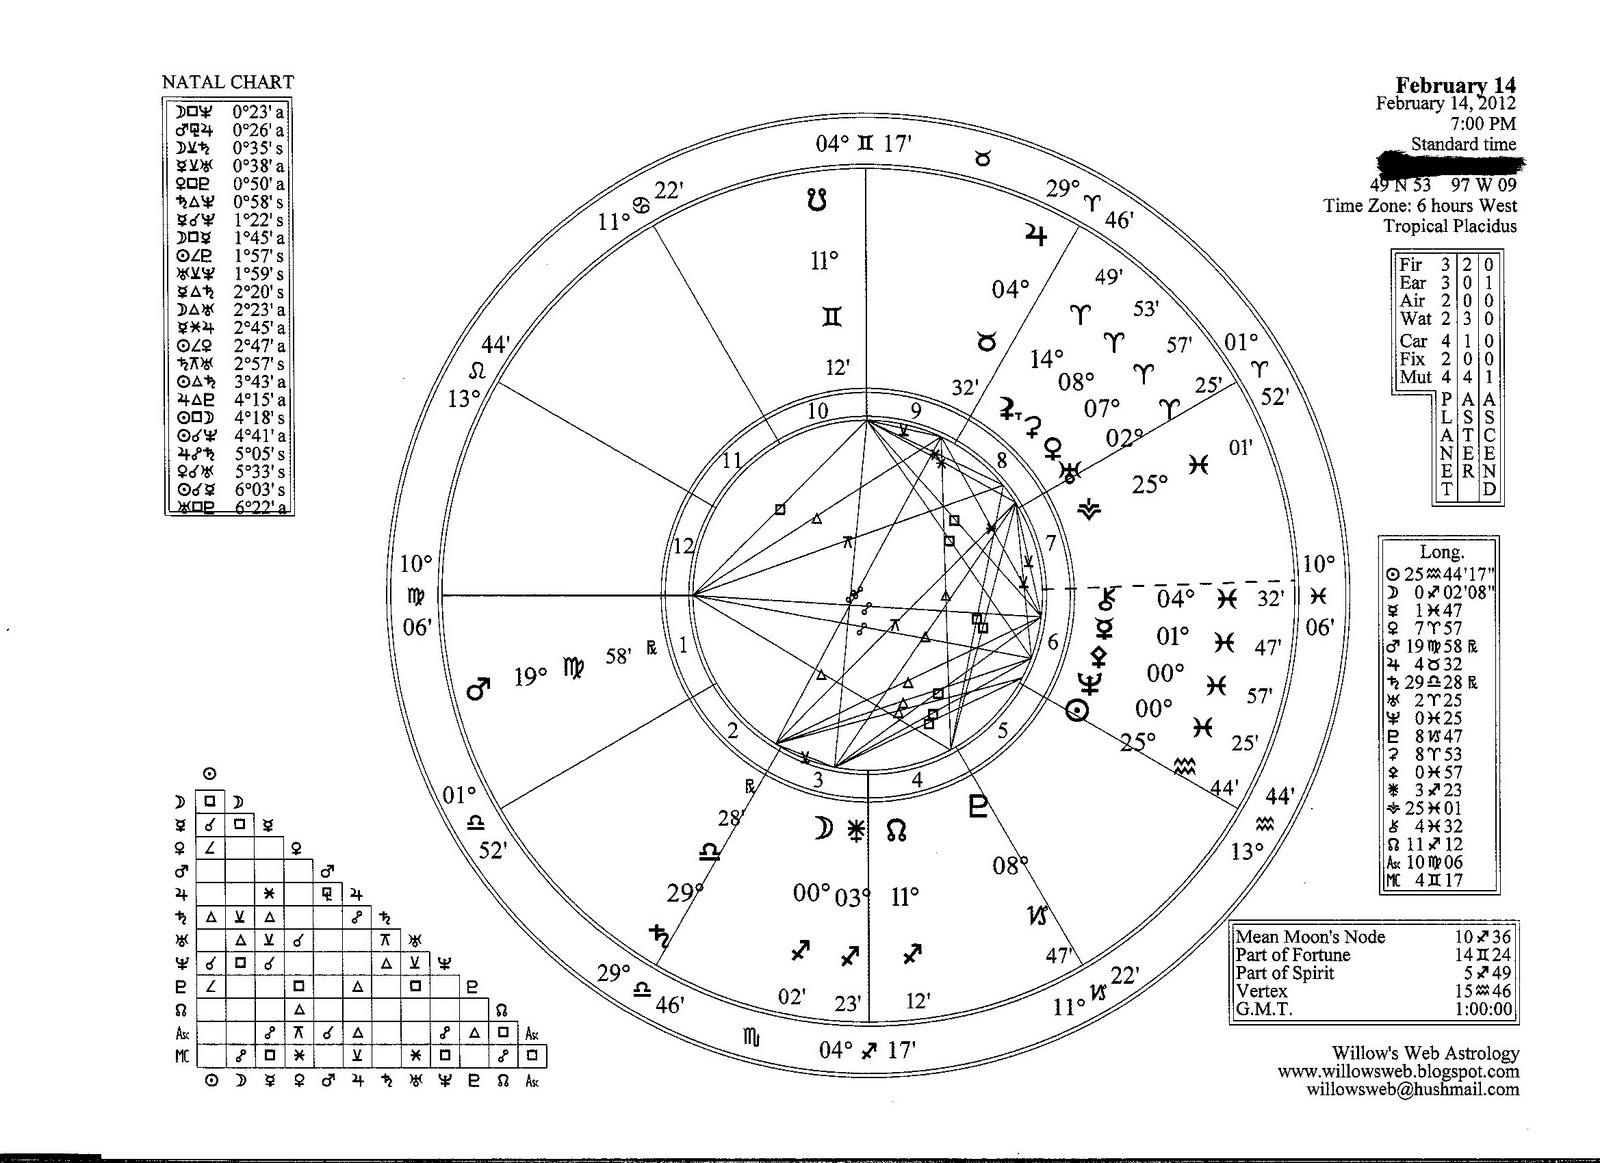 Willow's Web Astrology: February 14: Venus-Ceres in Aries Make a